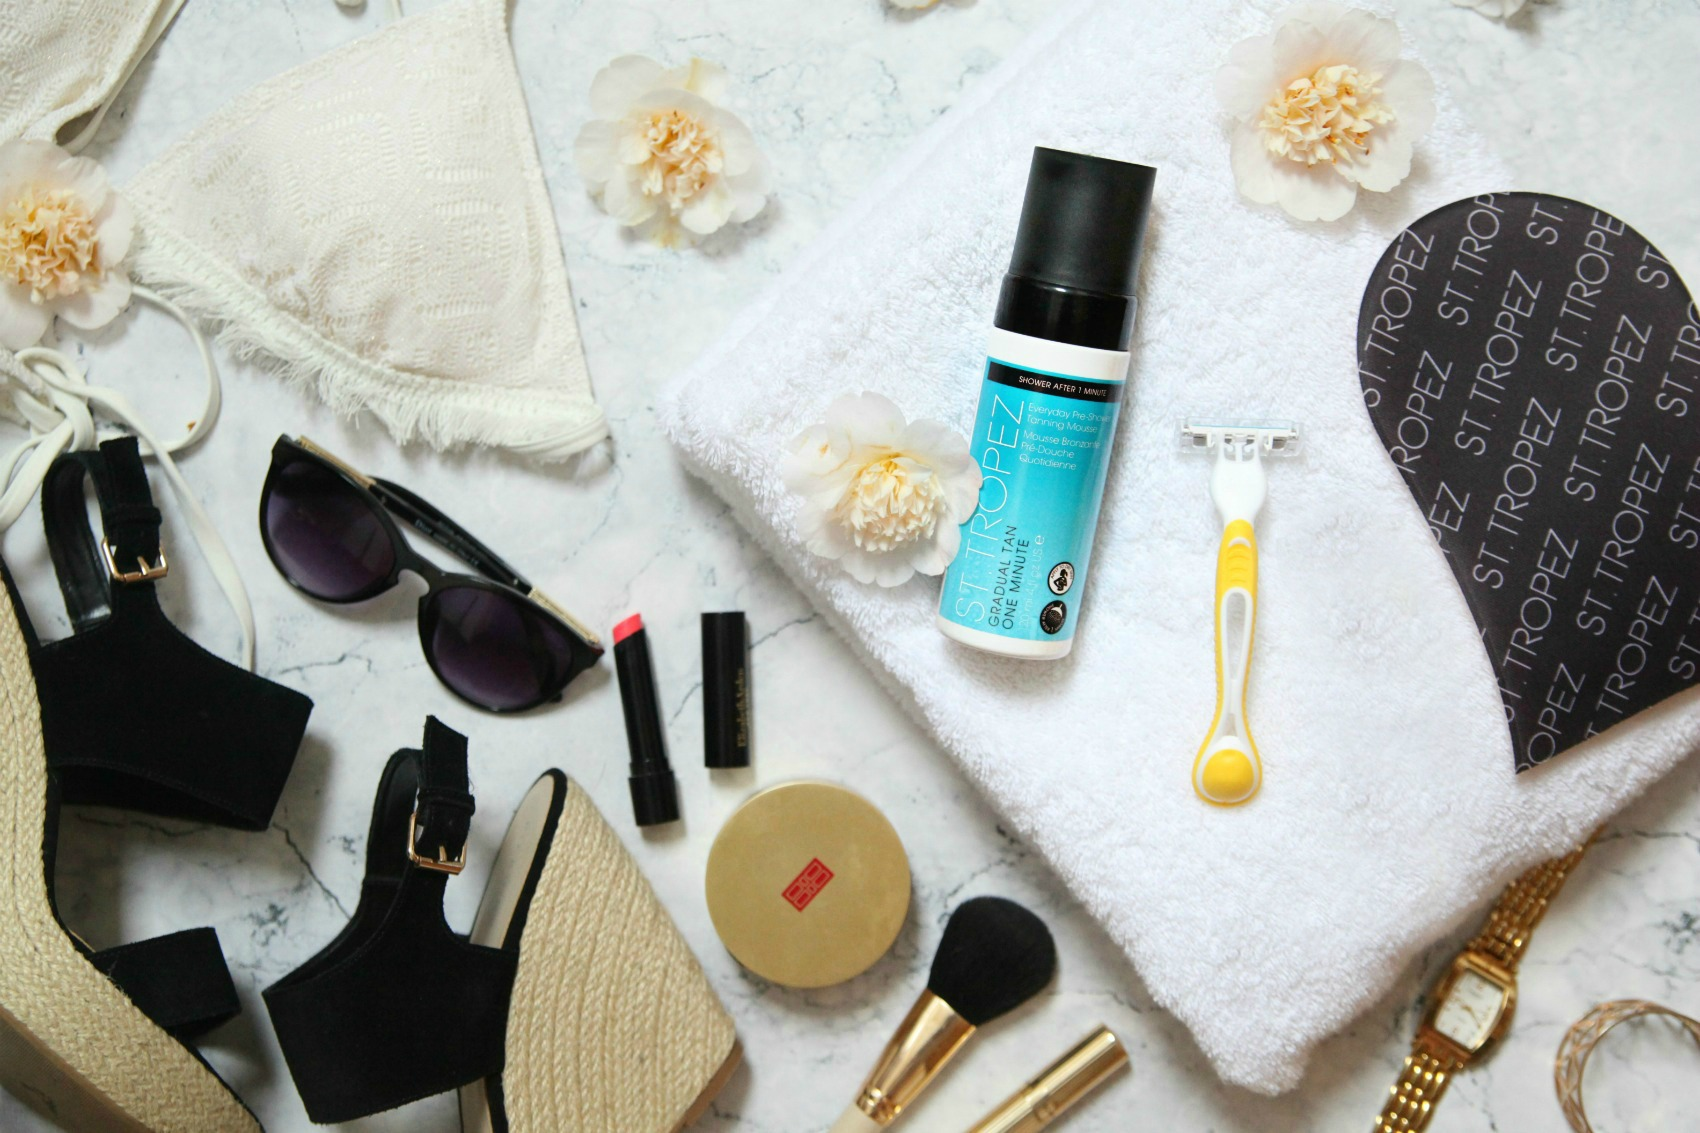 Gradual Tan One Minute Pre-Shower Mousse from St. Tropez